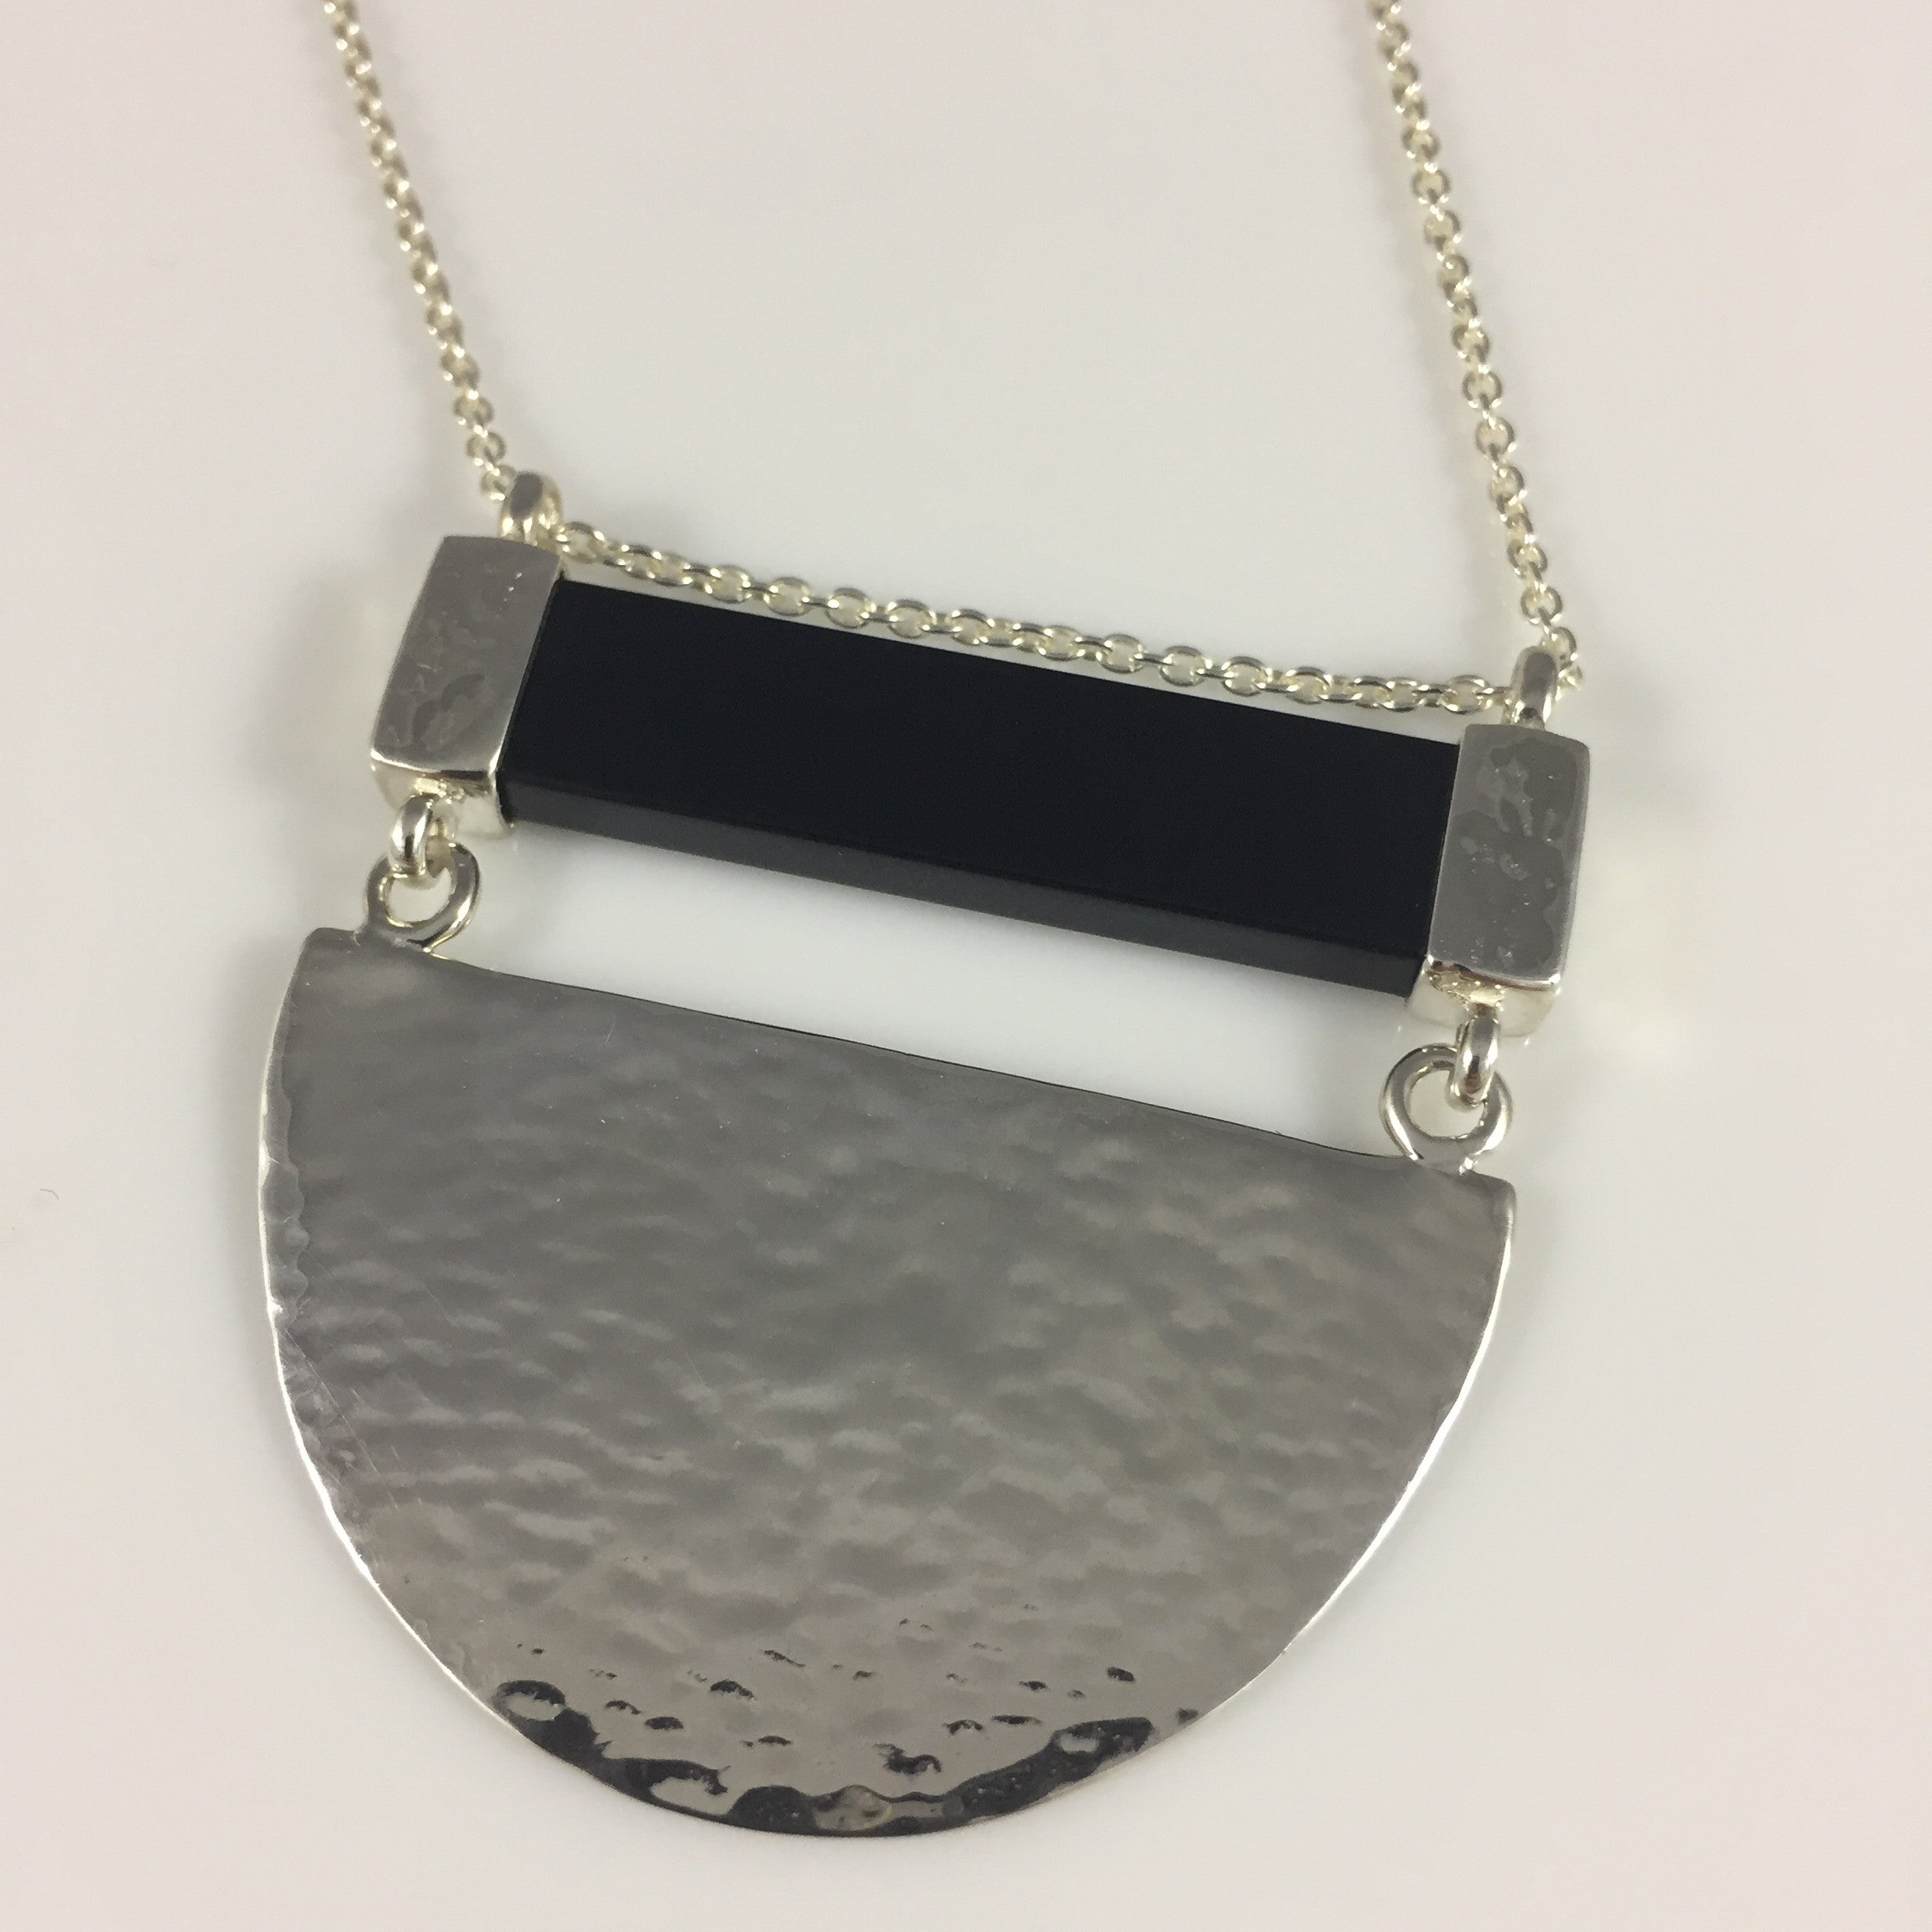 Silpada n3439 modern contrast necklace silverquest designs silpada n3439 modern contrast necklace aloadofball Images